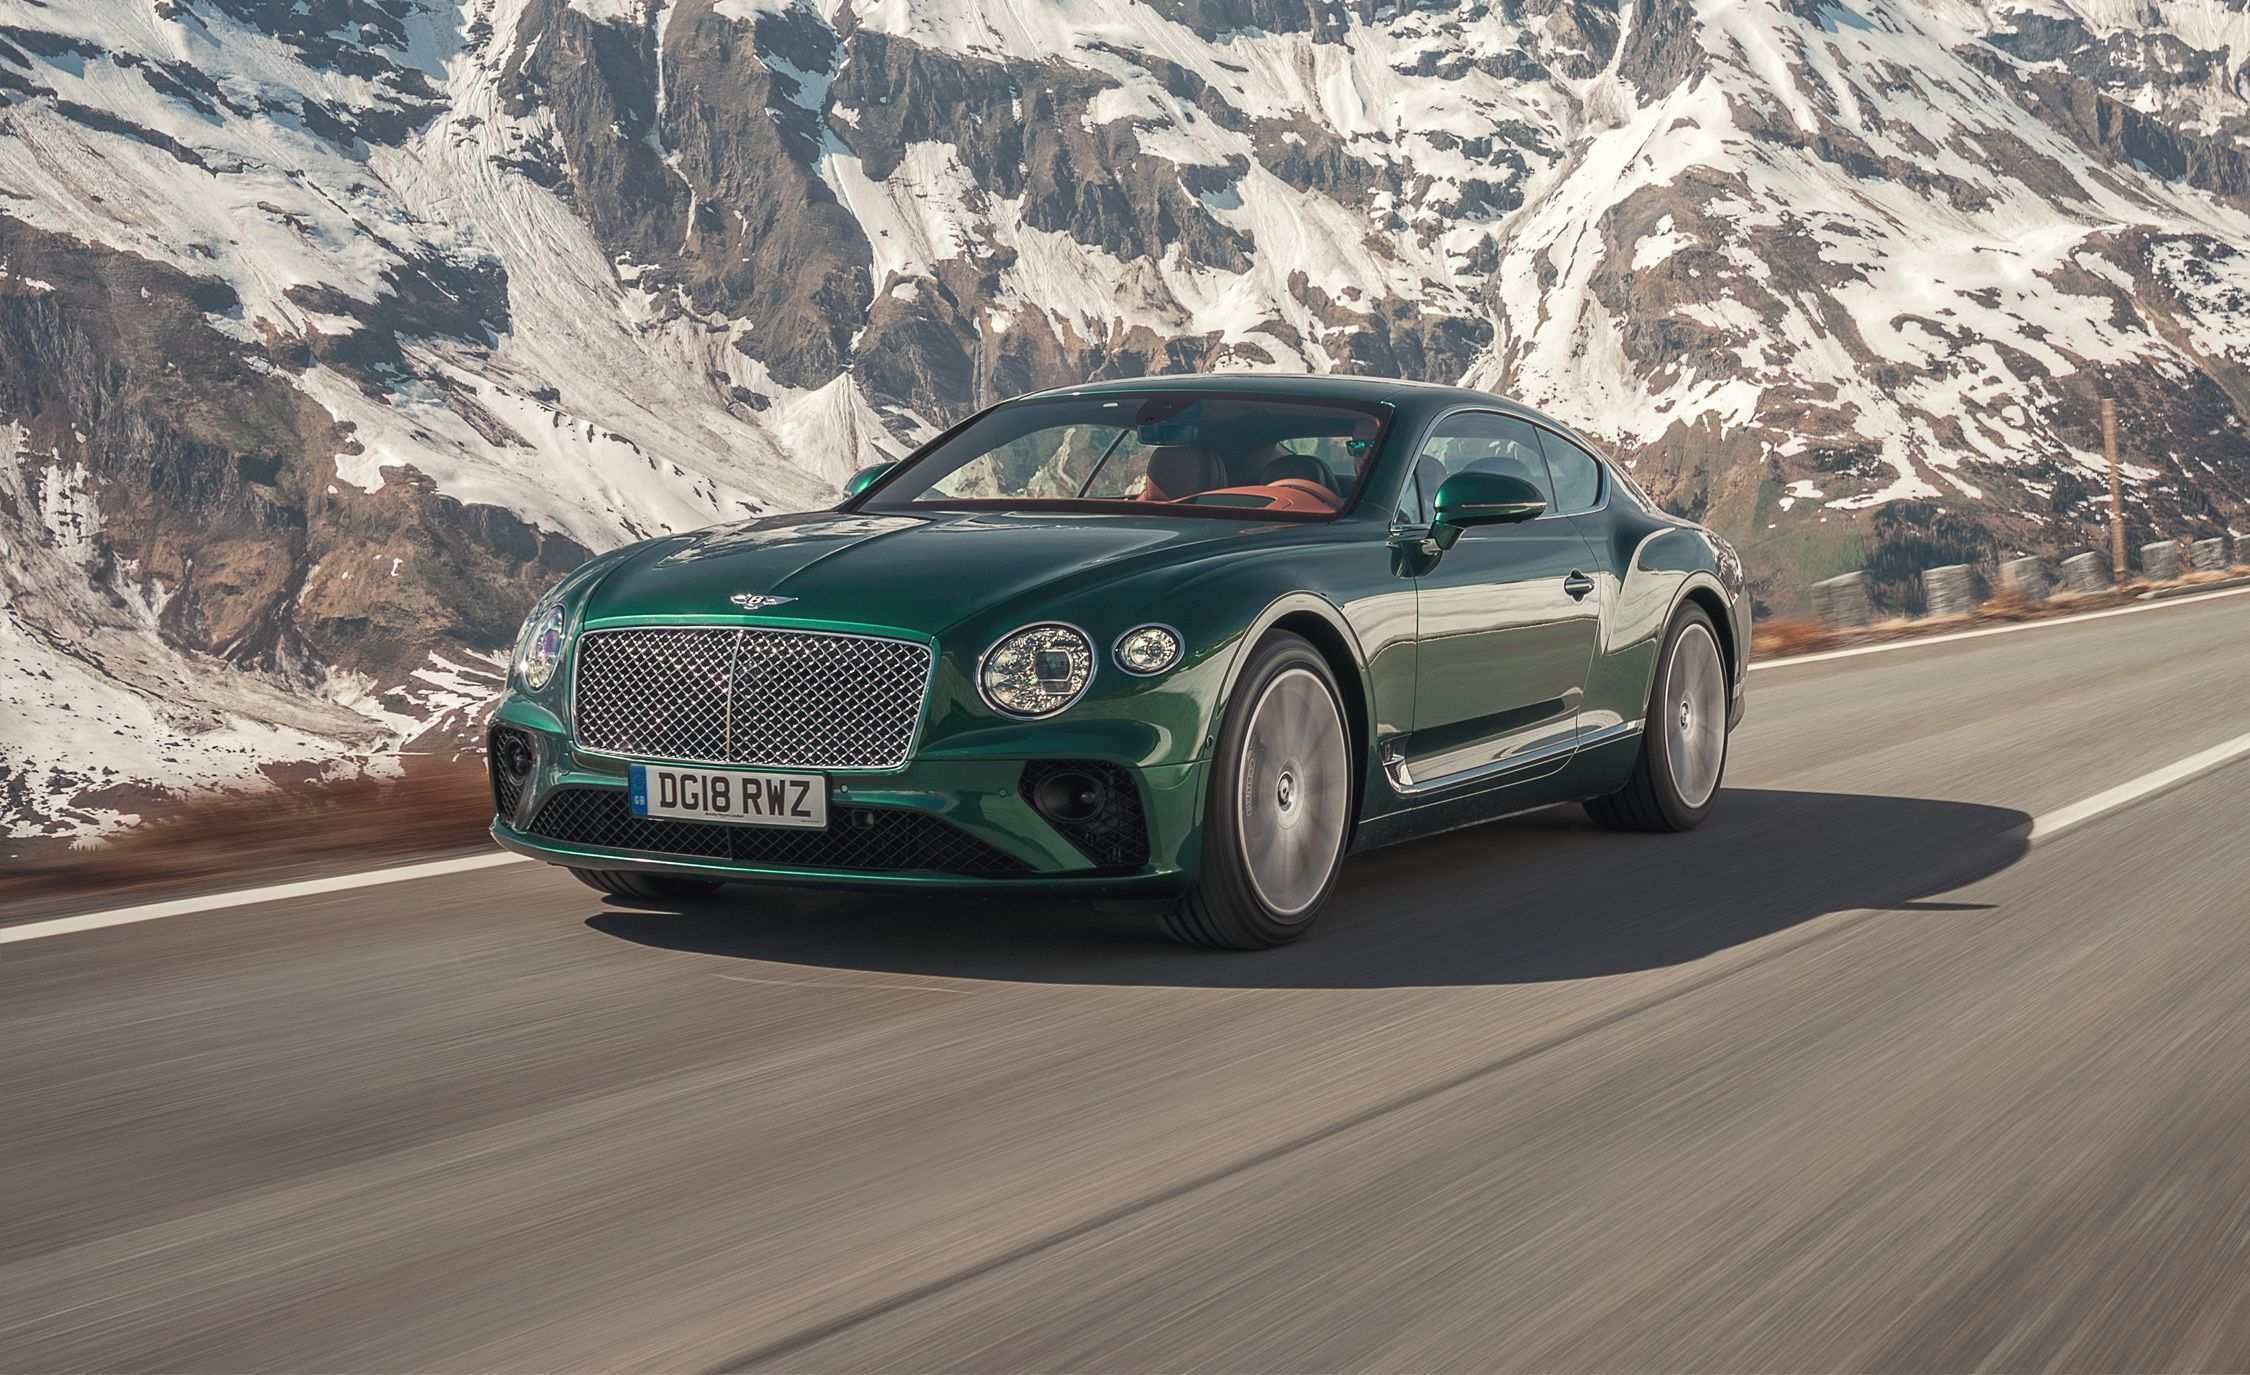 78 The 2019 Bentley Continental Gt V8 Review by 2019 Bentley Continental Gt V8